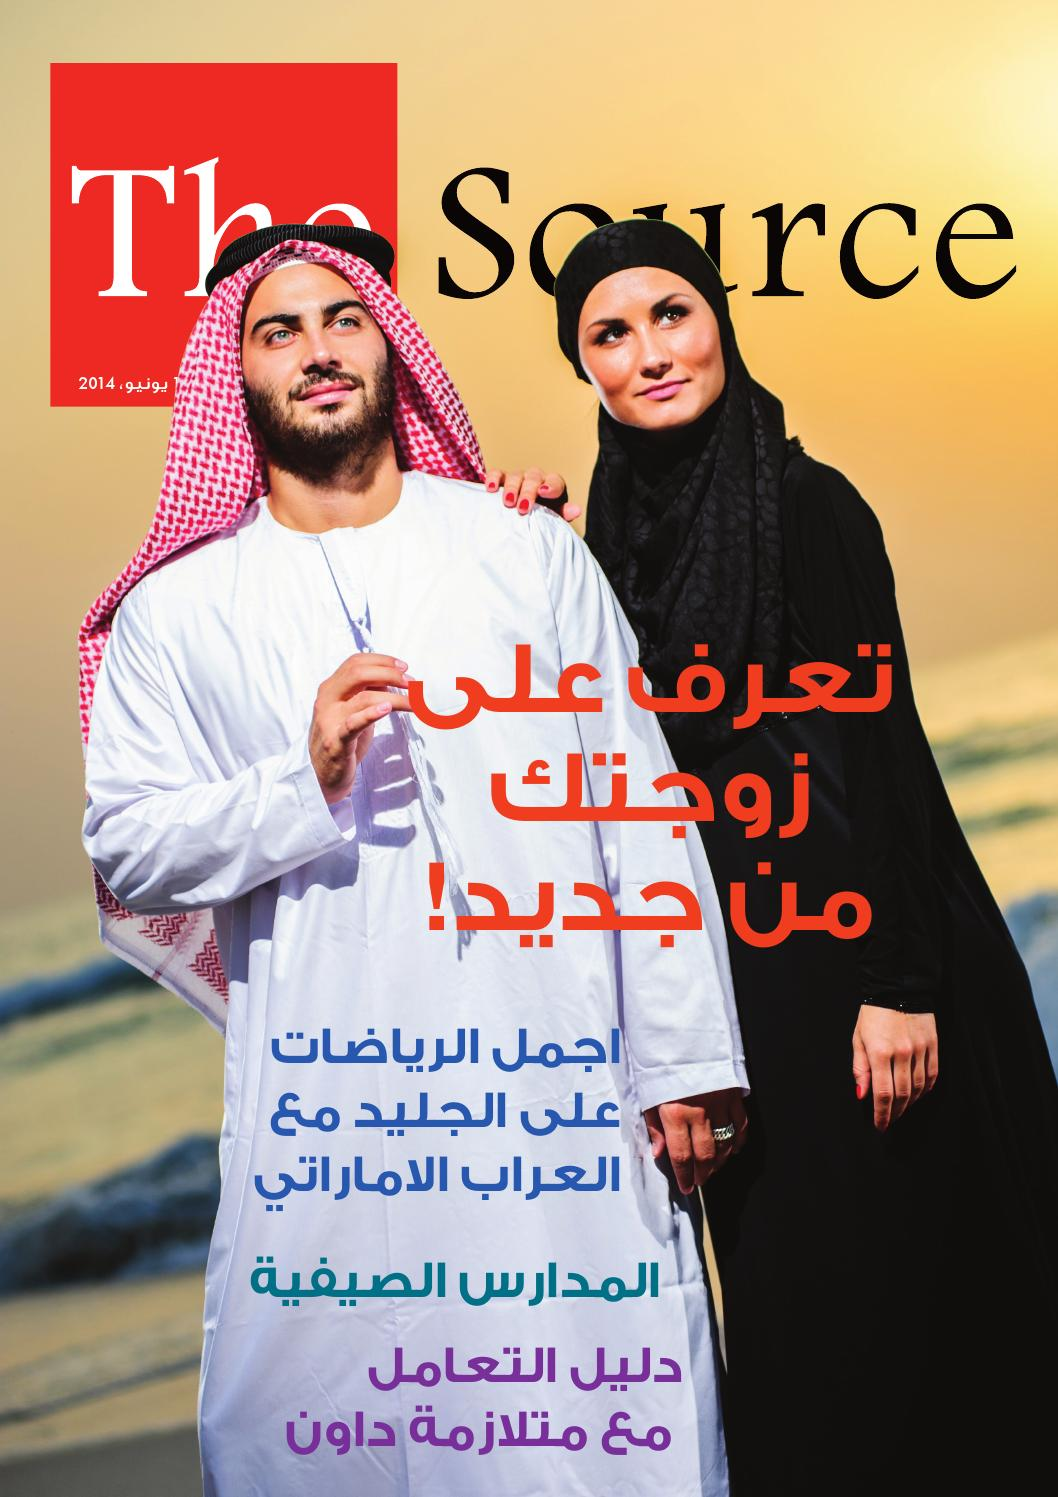 9a0f15f07 Issue74 ar by The Source - issuu